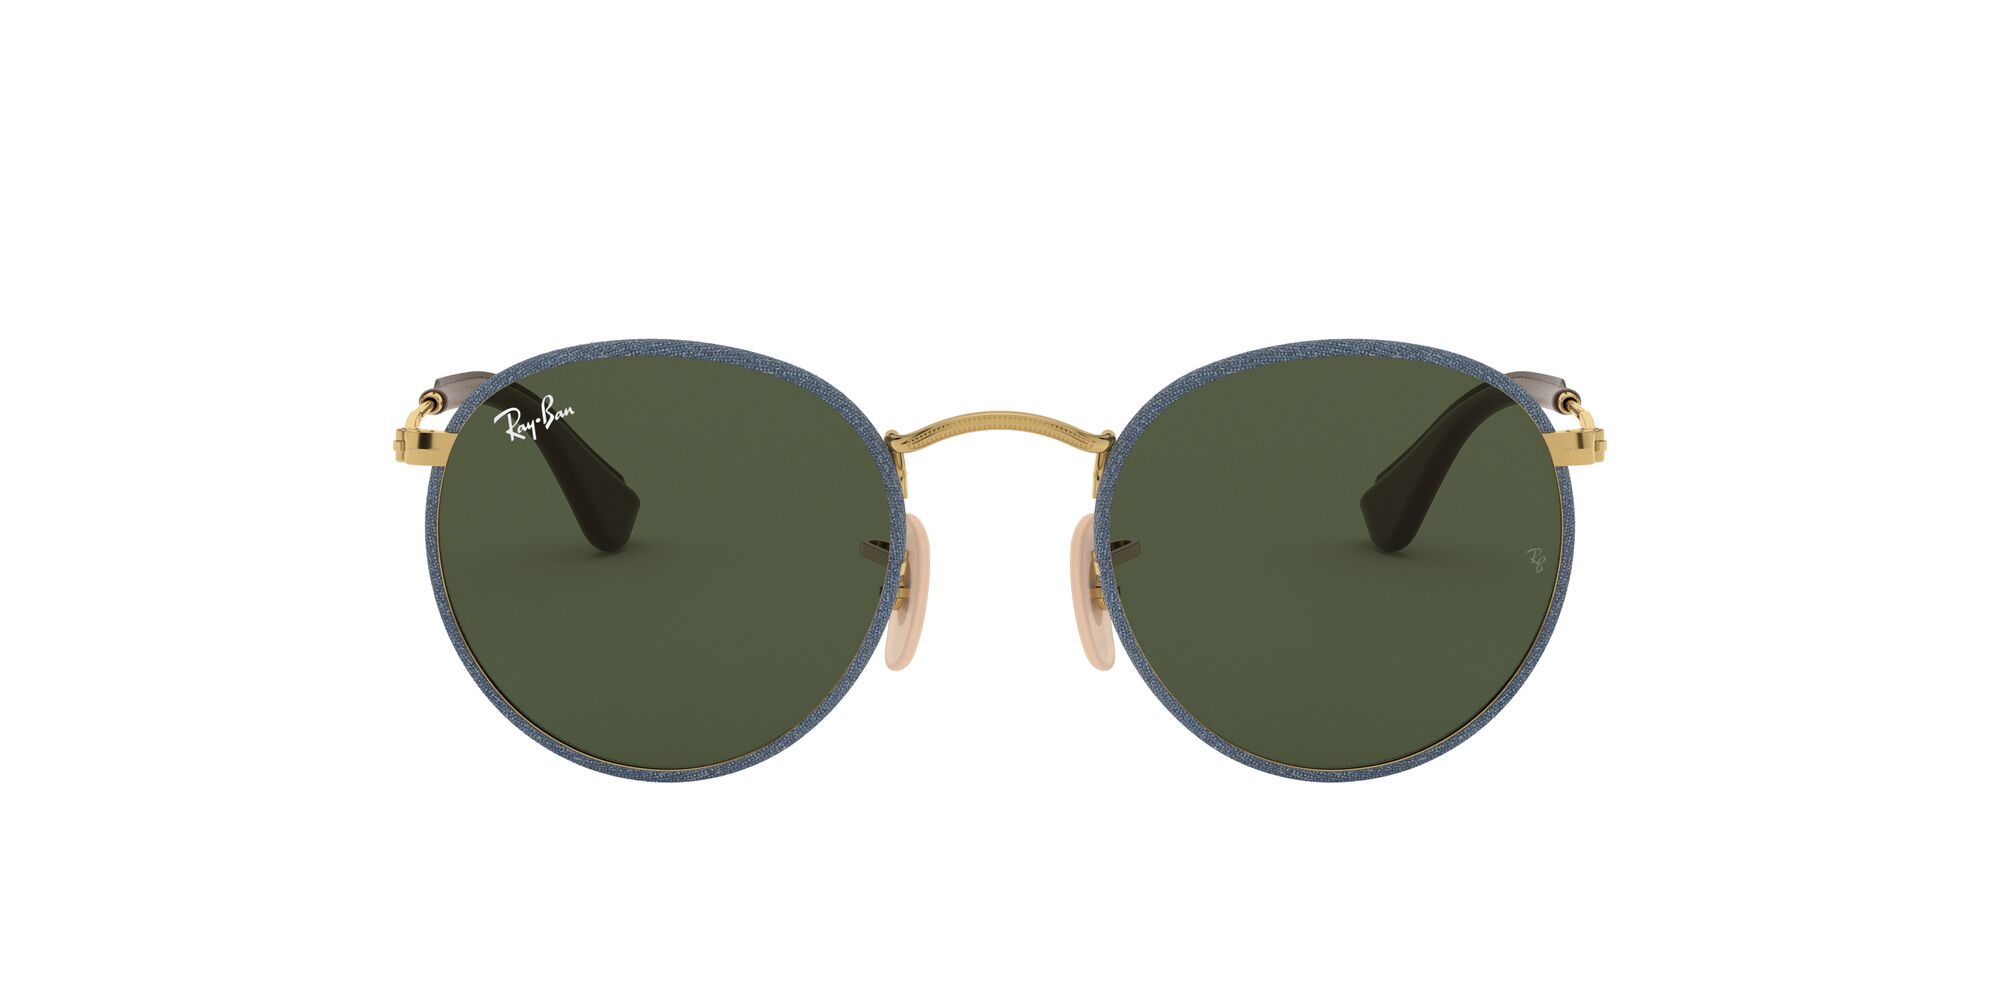 Front Ray-Ban Ray-Ban 0RB3475Q 919431 50/21 Goud, Blauw/Groen